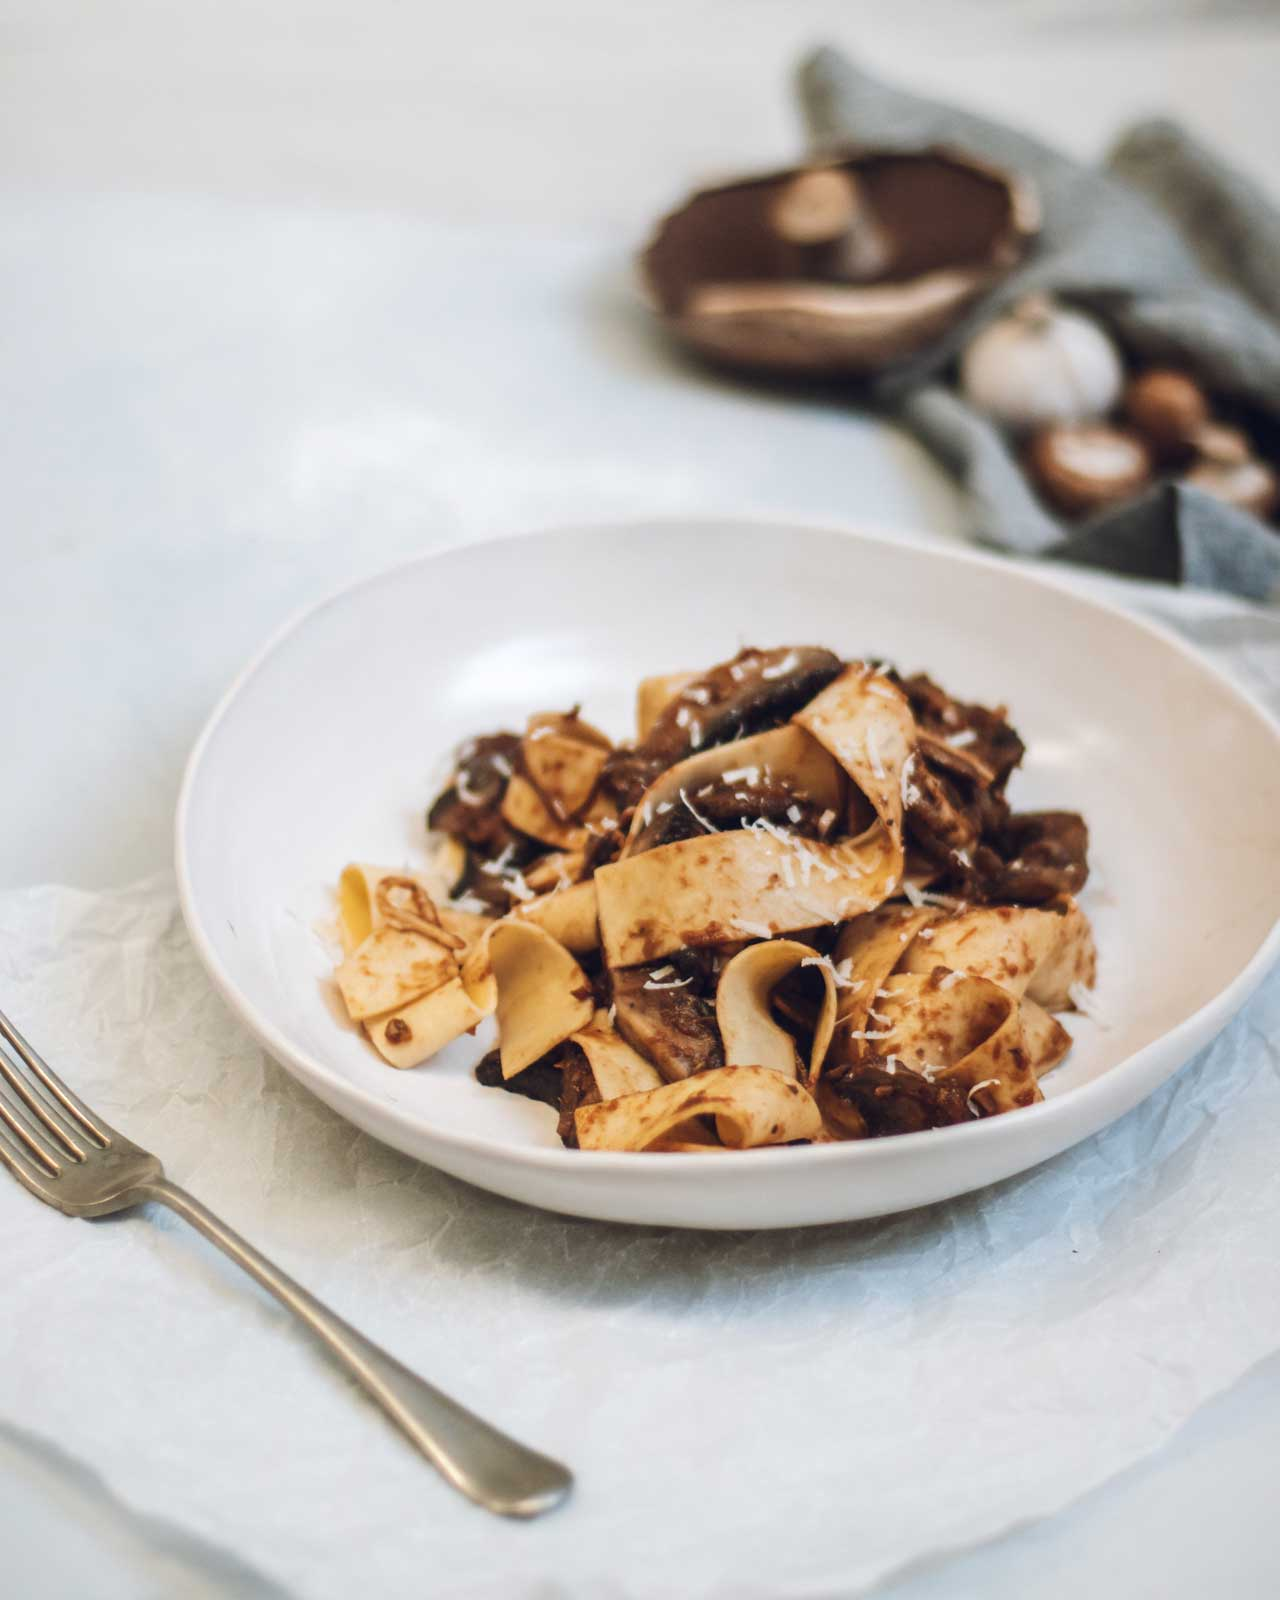 pappardelle pasta with portobello mushroom served in a handmade Winterwares ceramic bowl